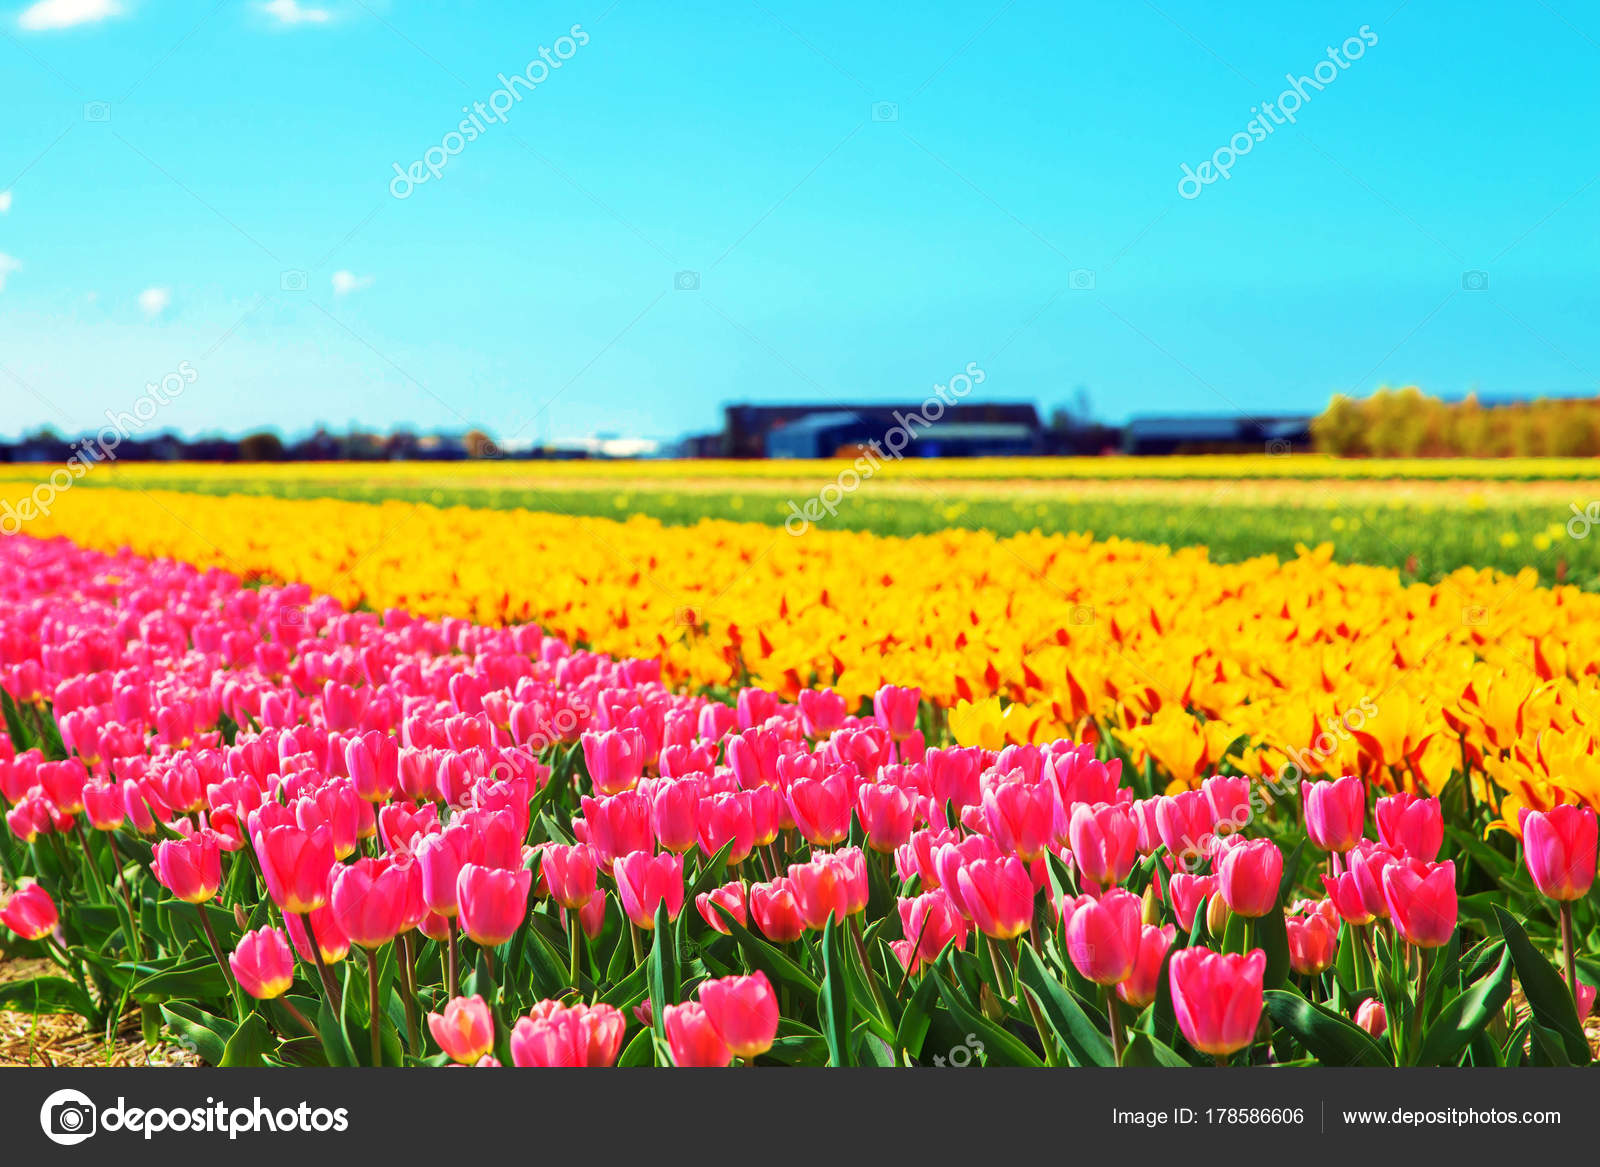 Spring flowers spring tulip field stock photo vitalinka 178586606 spring flowers spring tulip field spring floral background bright spring flowers tulips photo by vitalinka mightylinksfo Image collections